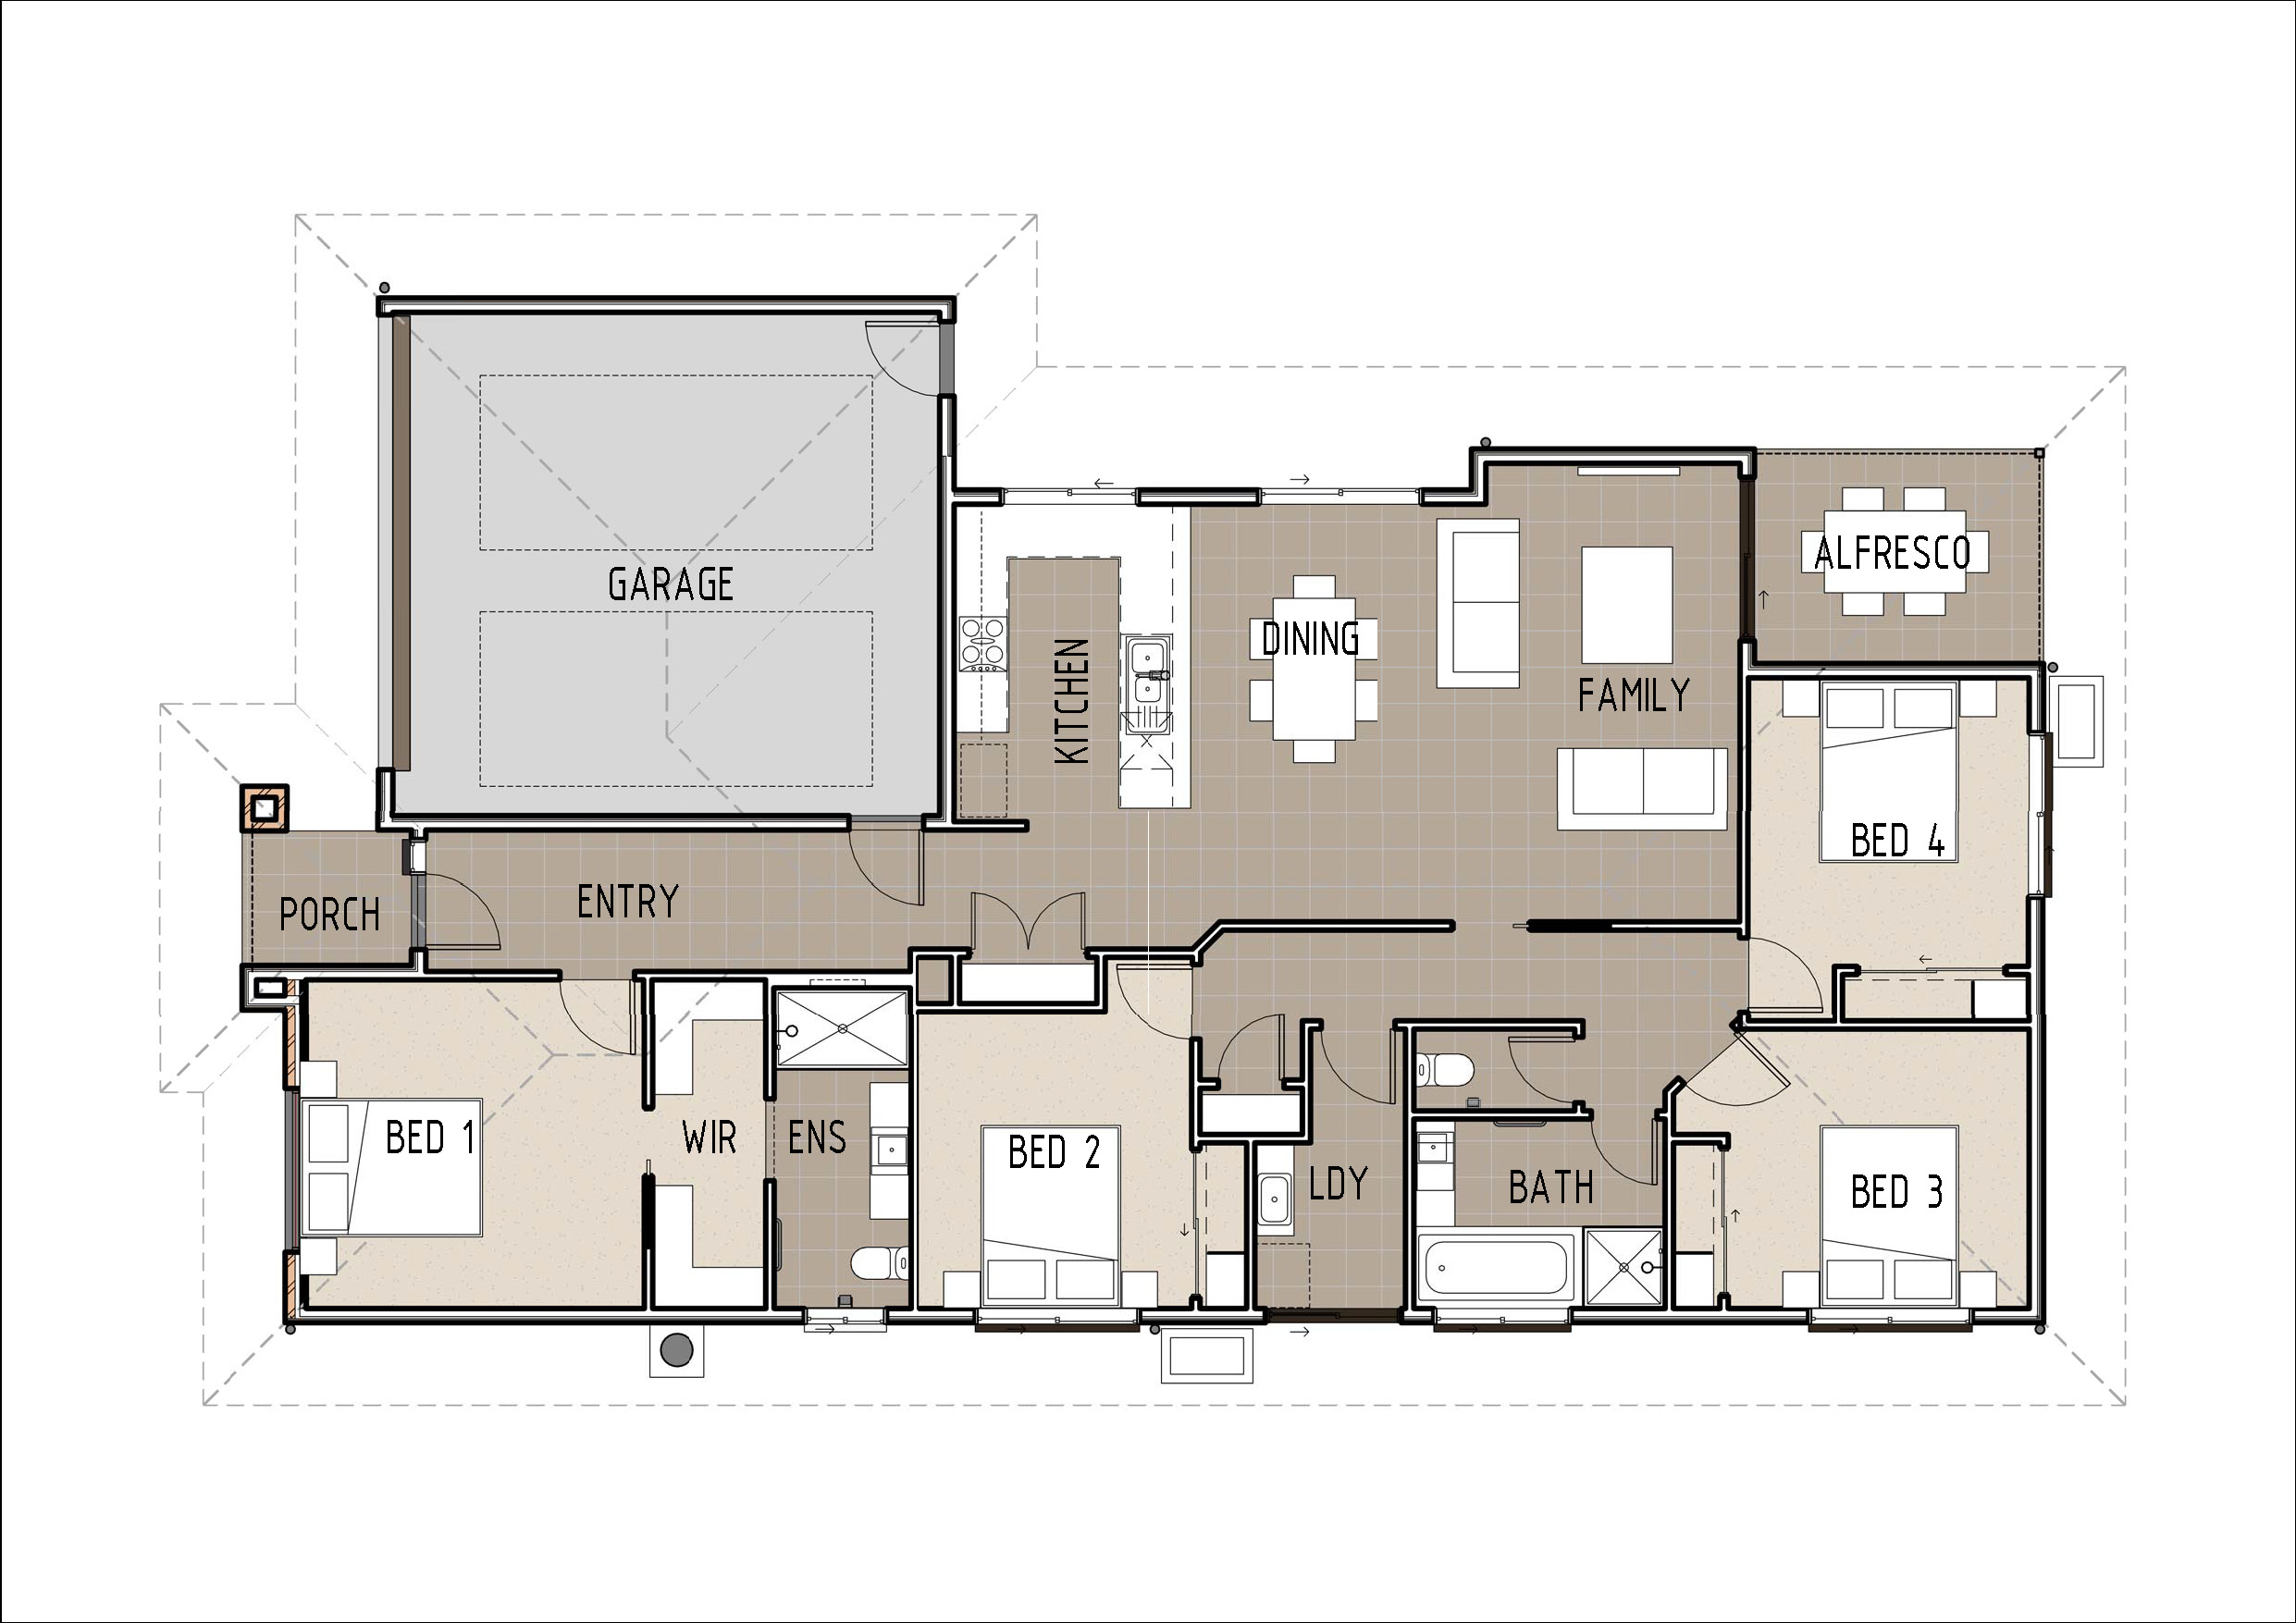 House plans cairns house plans cairns 28 images 2 storey for House plans cairns